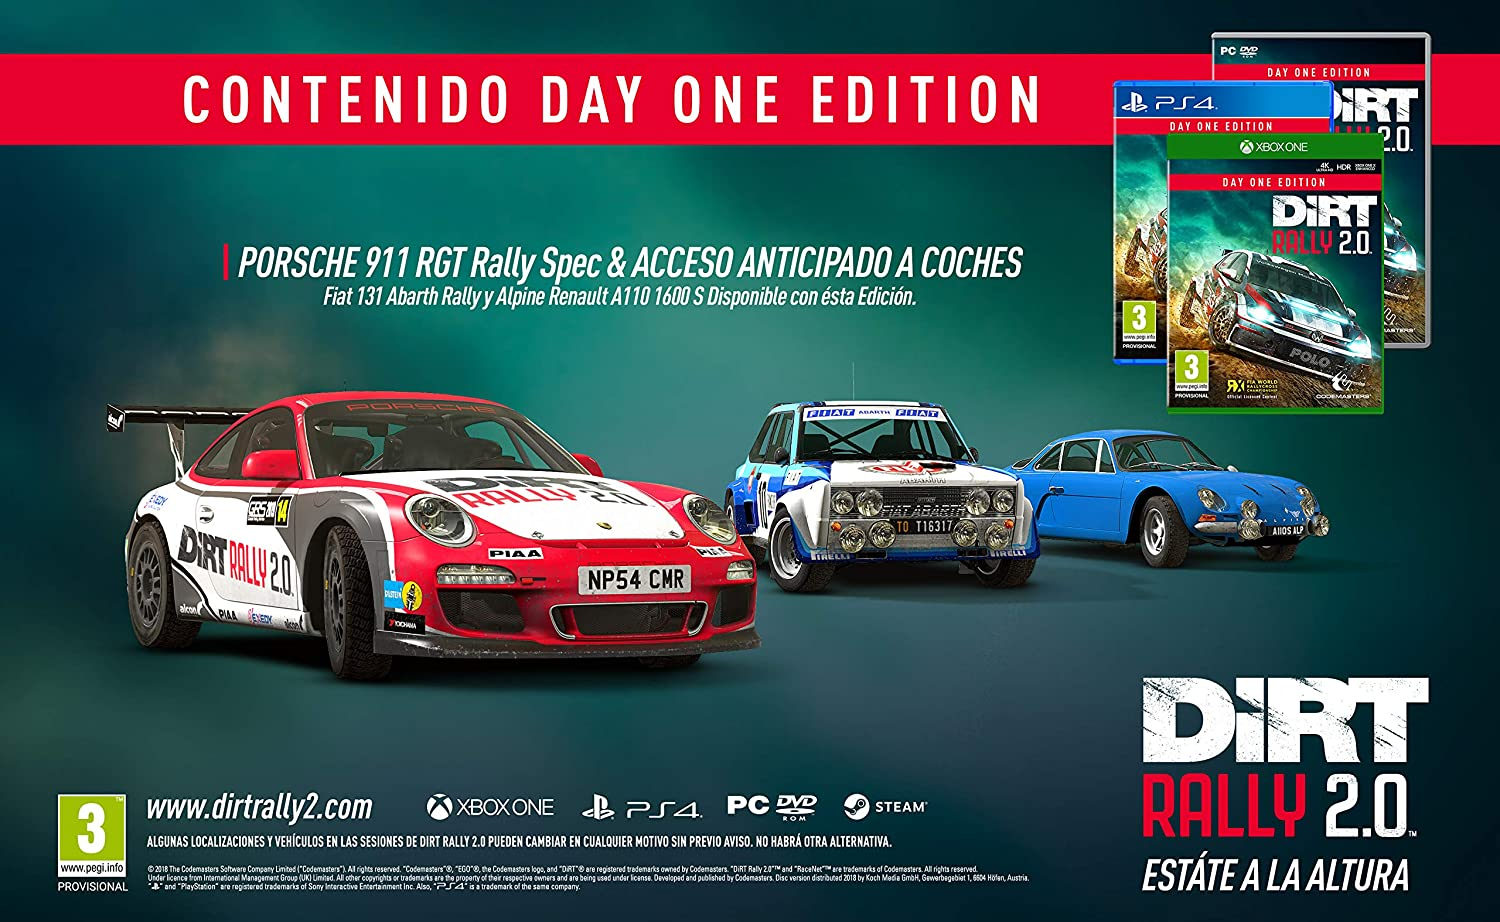 Codemasters - DiRT Rally 2.0 Day One Edition (Xbox One): Amazon.es: Videojuegos